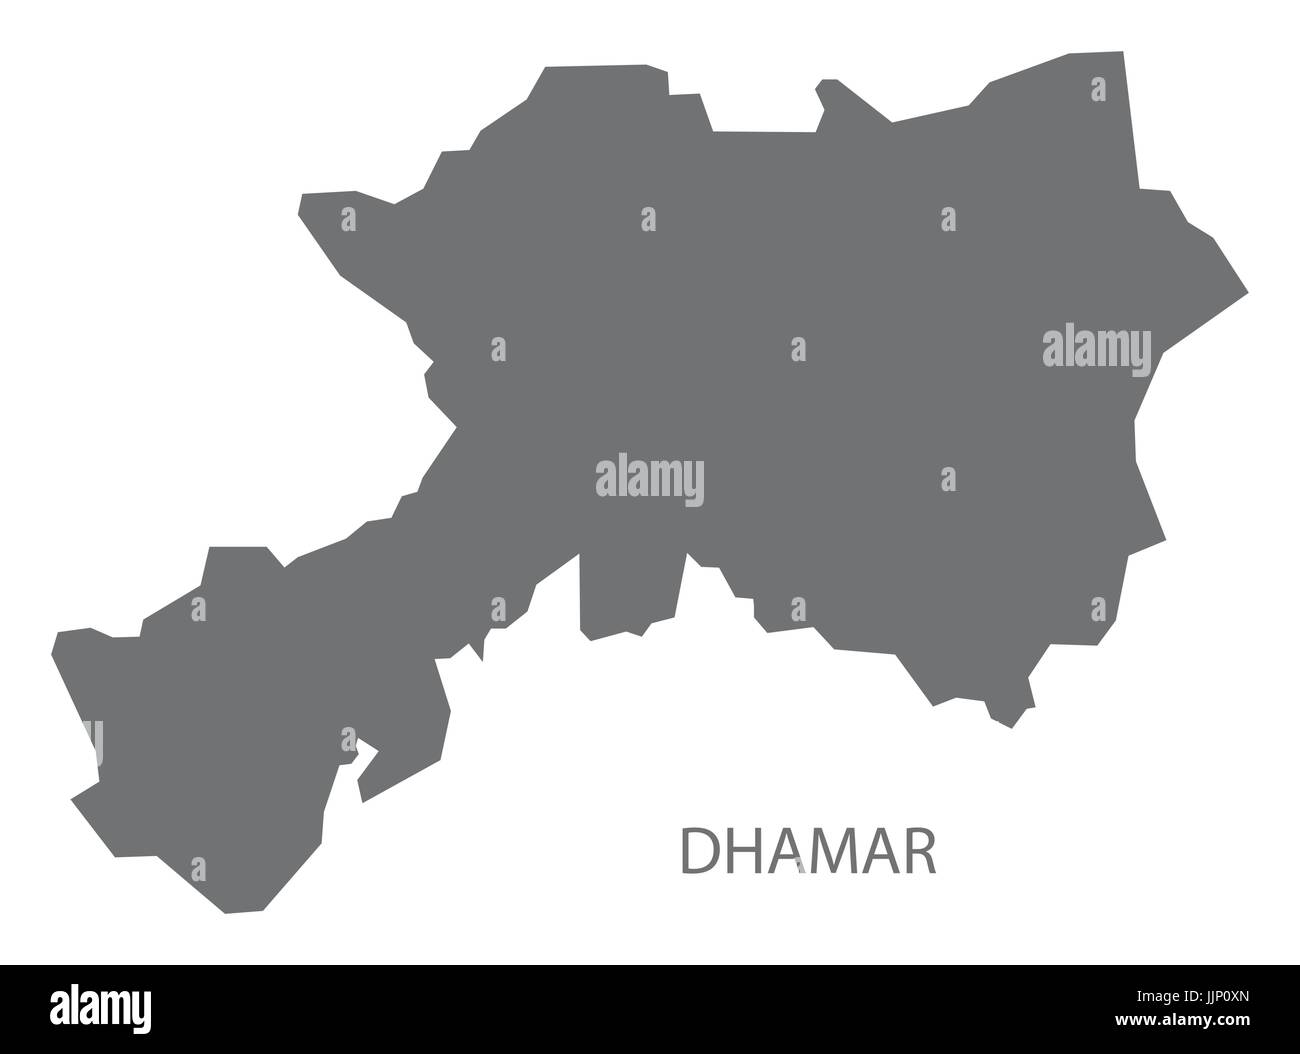 Dhamar Yemen governorate map grey illustration silhouette shape - Stock Vector